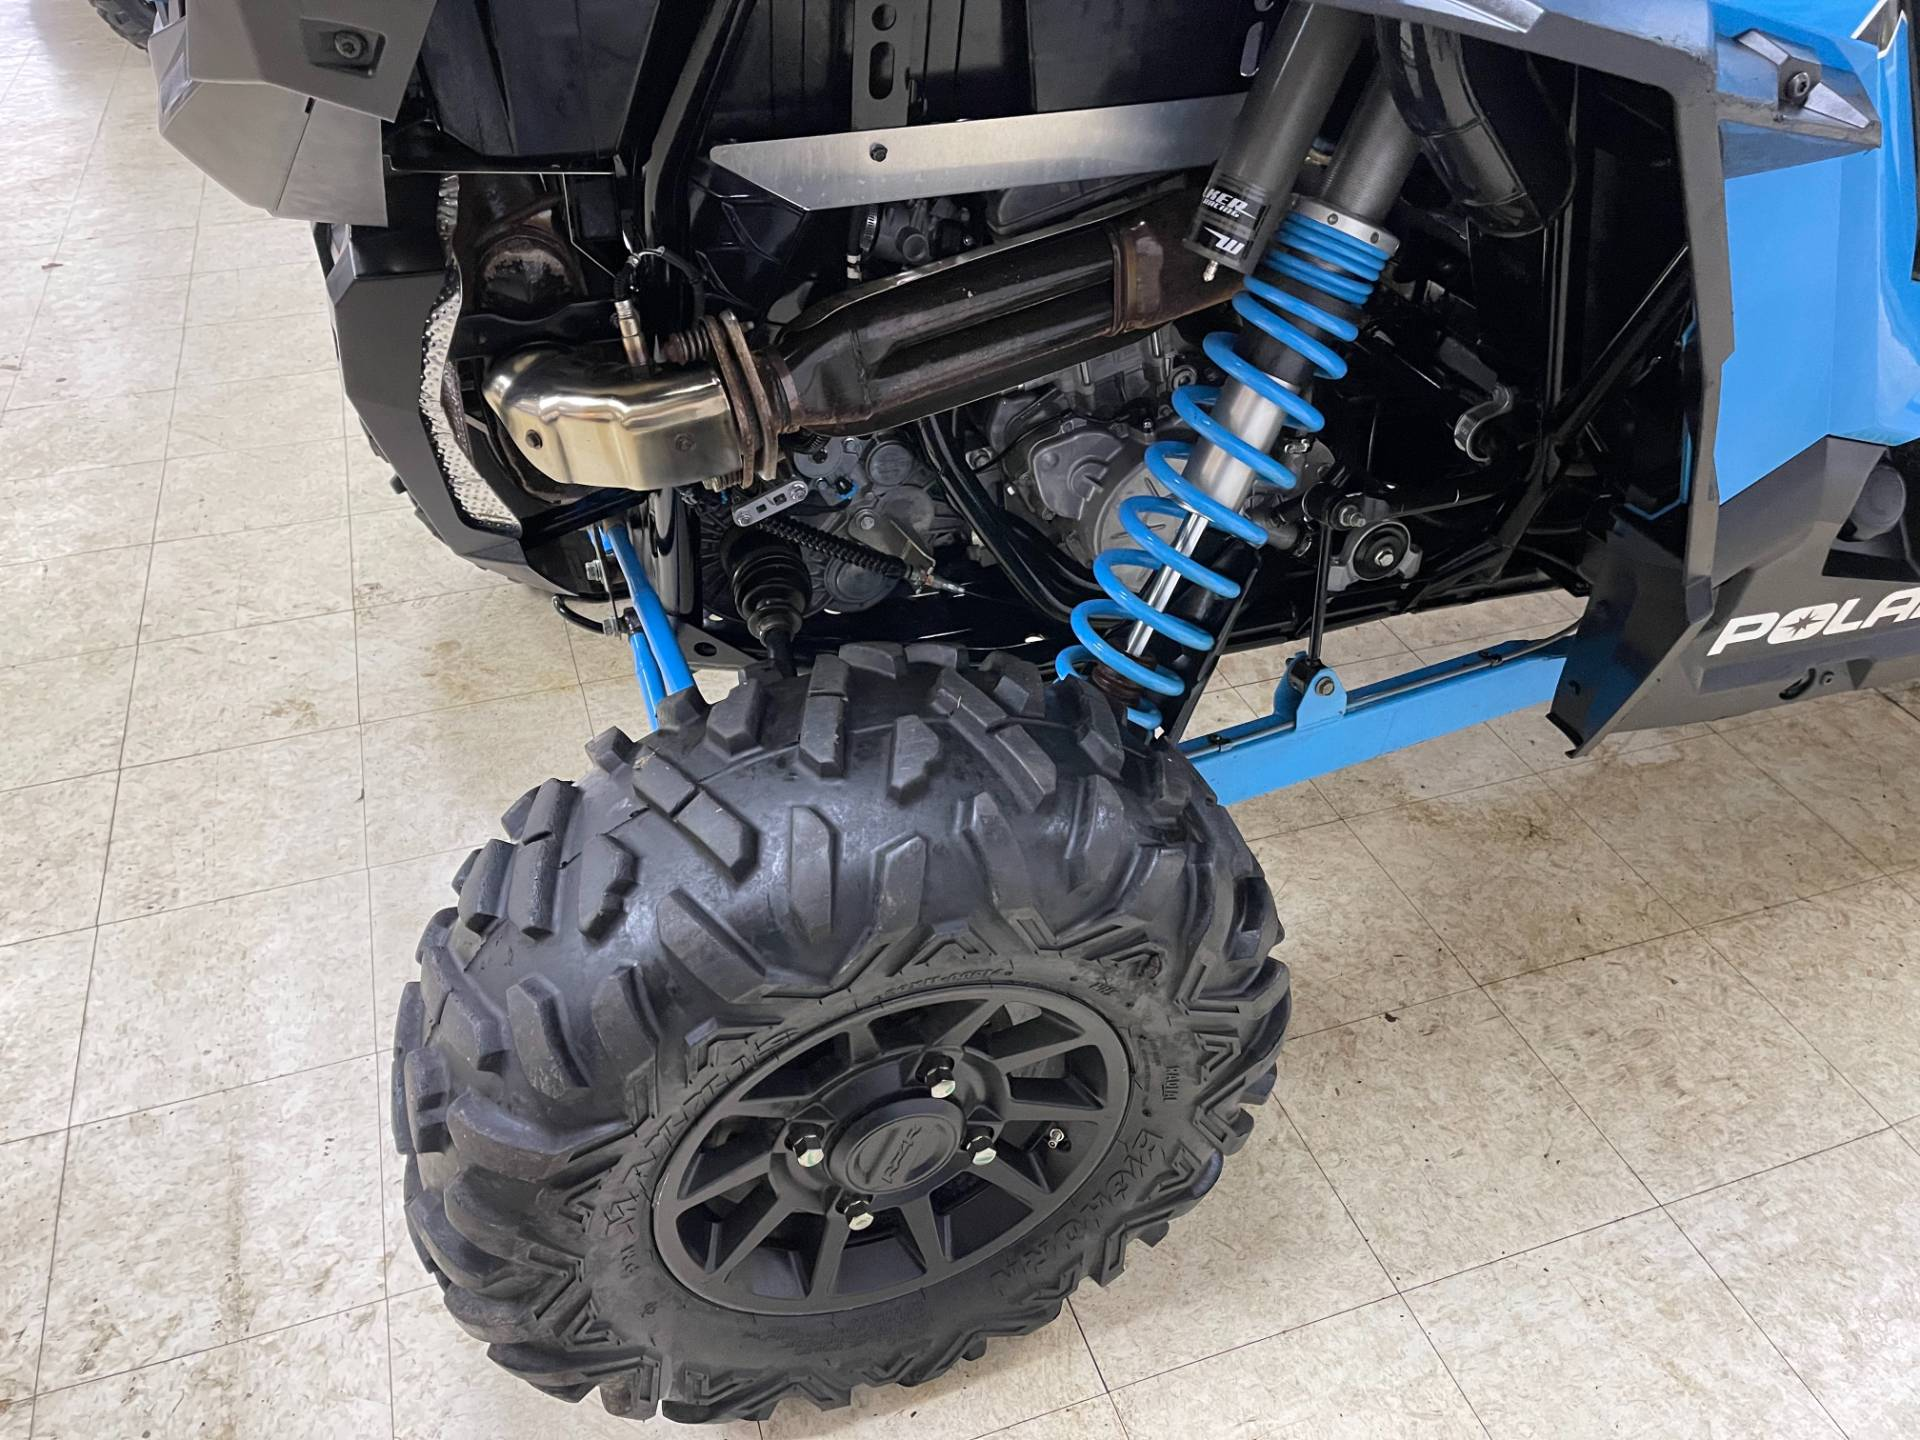 2020 Polaris RZR XP 4 1000 in Herkimer, New York - Photo 18